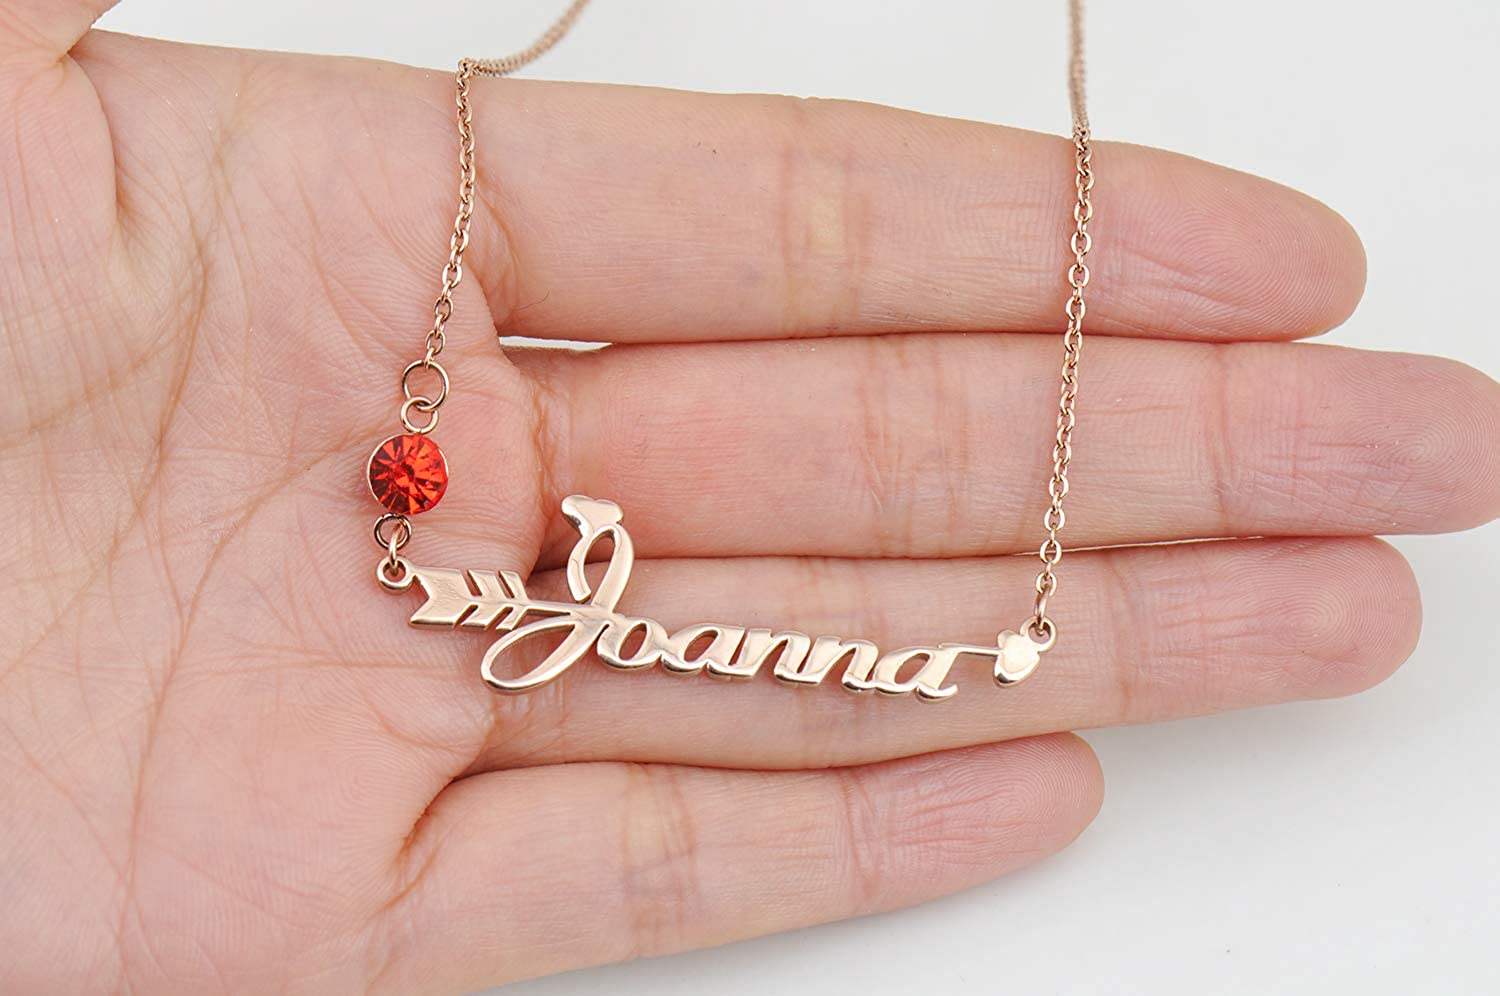 HUAN XUN Personalized Peronalized My Custom Name Necklace Jada Old English Jewelry